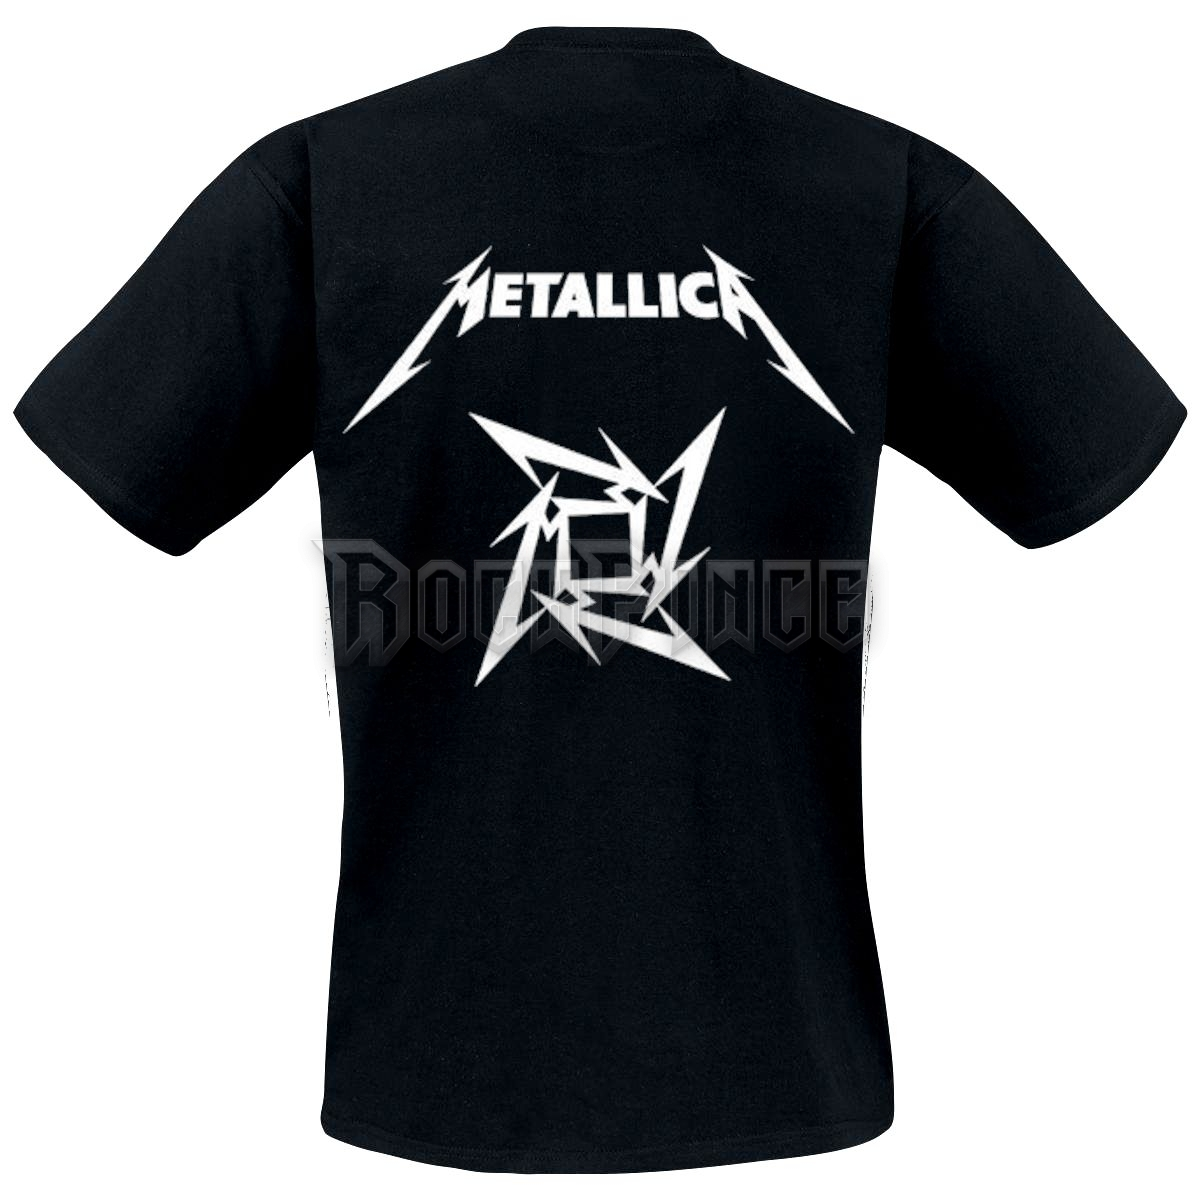 METALLICA - Skulls With Chains - METTS10TS